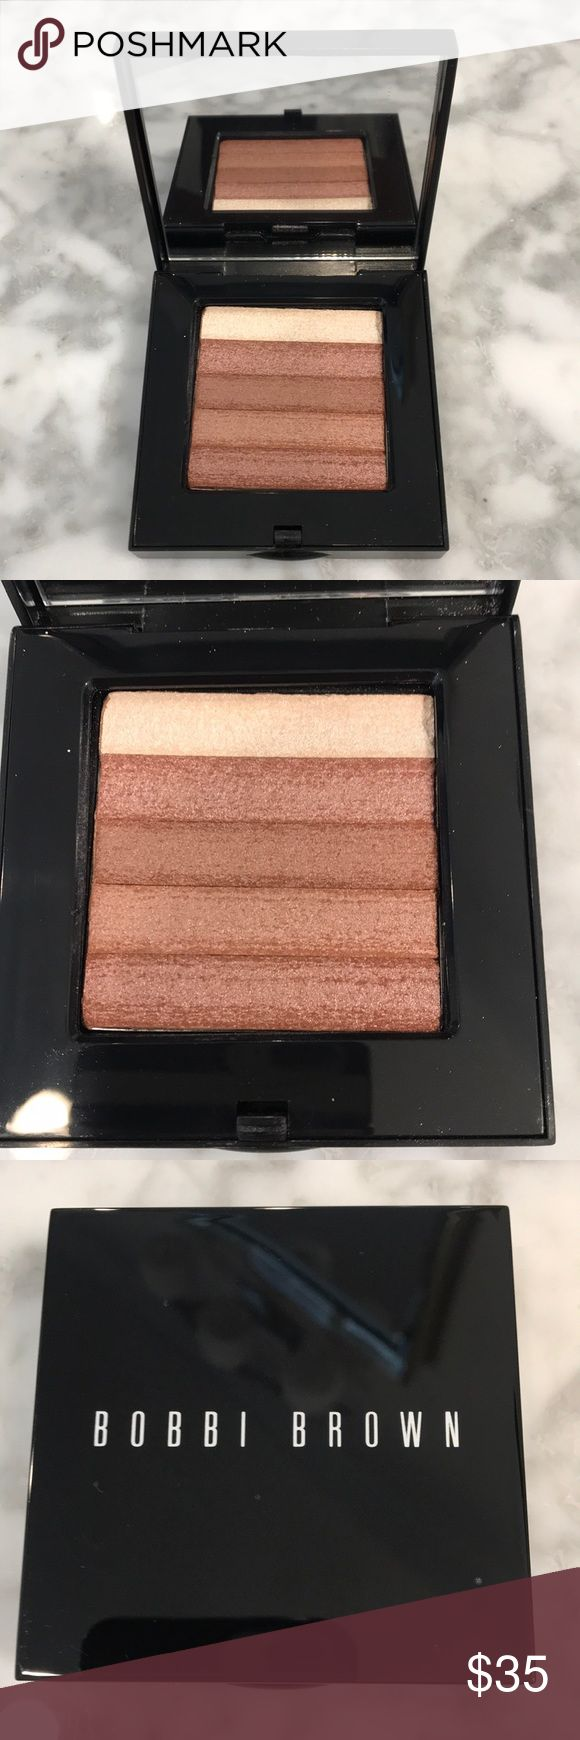 Brand new Bobbi Brown Tawny Shimmer Brick Compact! Brand new Bobbi Brown Tawny Shimmer Brick Compact! Never even been tested! I took out of the package to keep for my personal use but dont wear much bronzer. This was purchased about a month ago. This shade is Bobbi favorite! Comes from a clean non smoking no pet but kid friendly home!  Bobbi Brown Makeup Bronzer